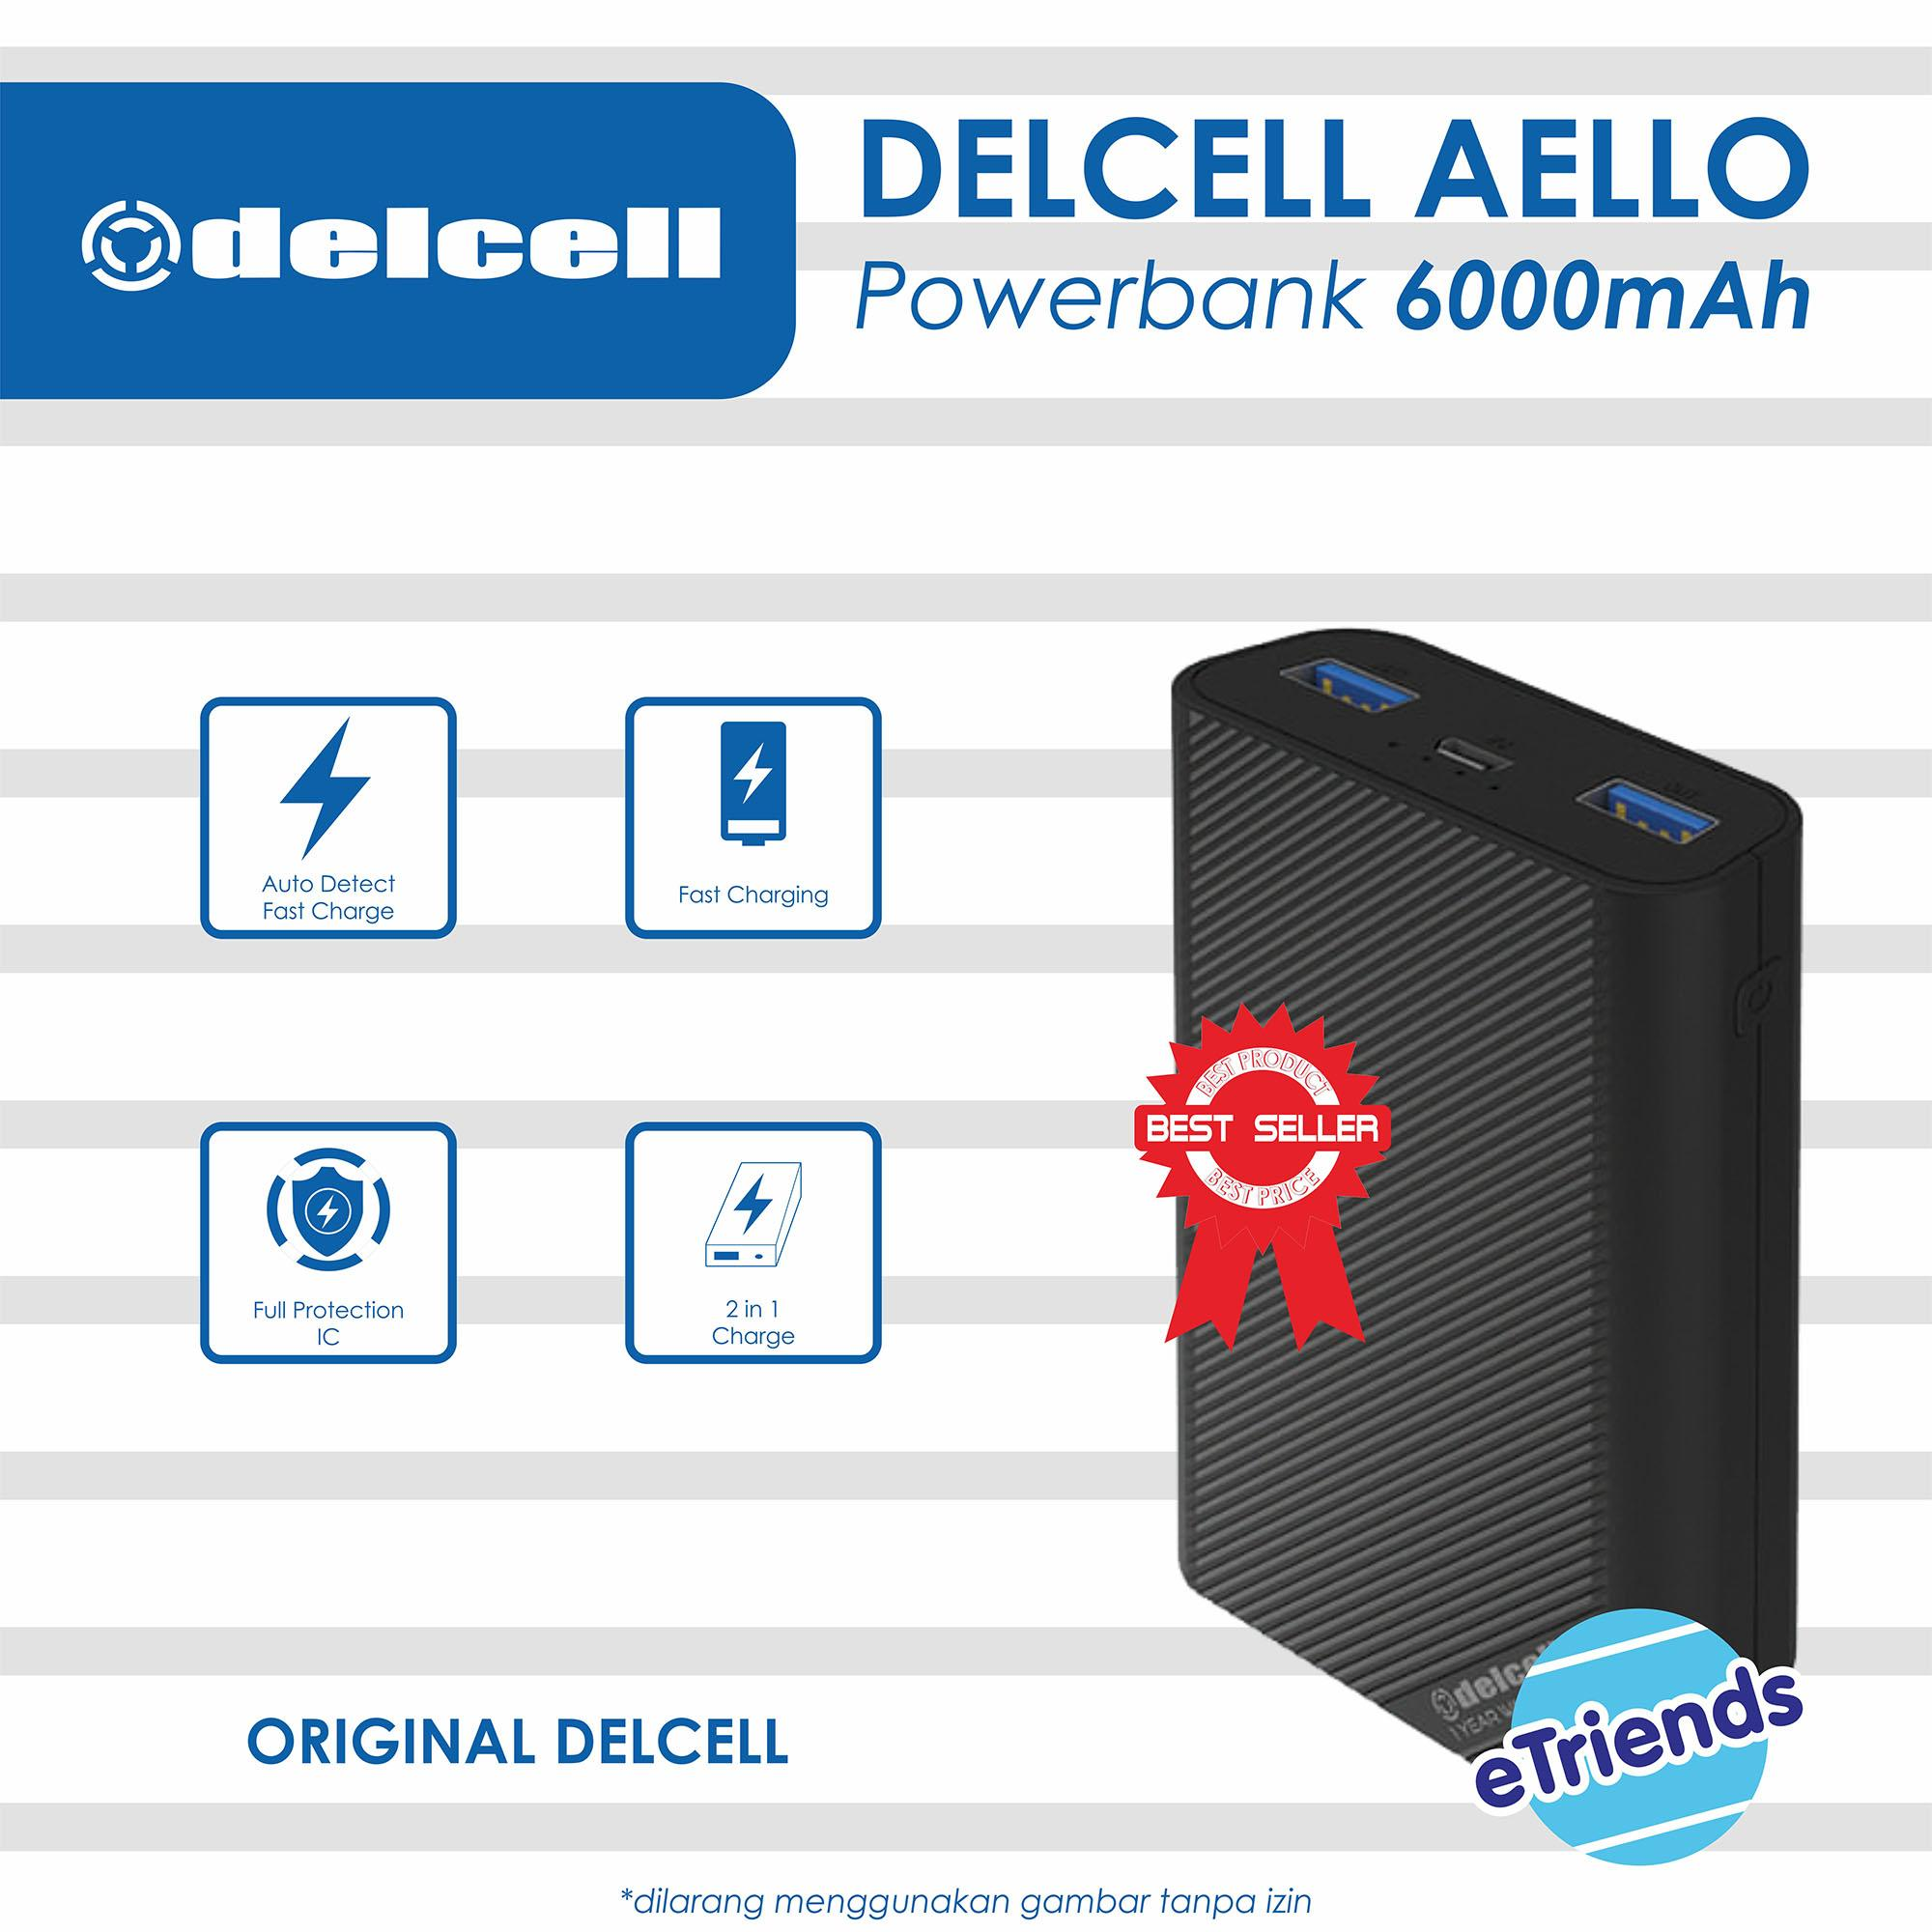 ... Real Capacity, Garansi 2 Tahun, Fast Charge, Slim Powerbank. Rp 74.700 PowerBank Delcell AELLO 6000Mah Power Bank ...